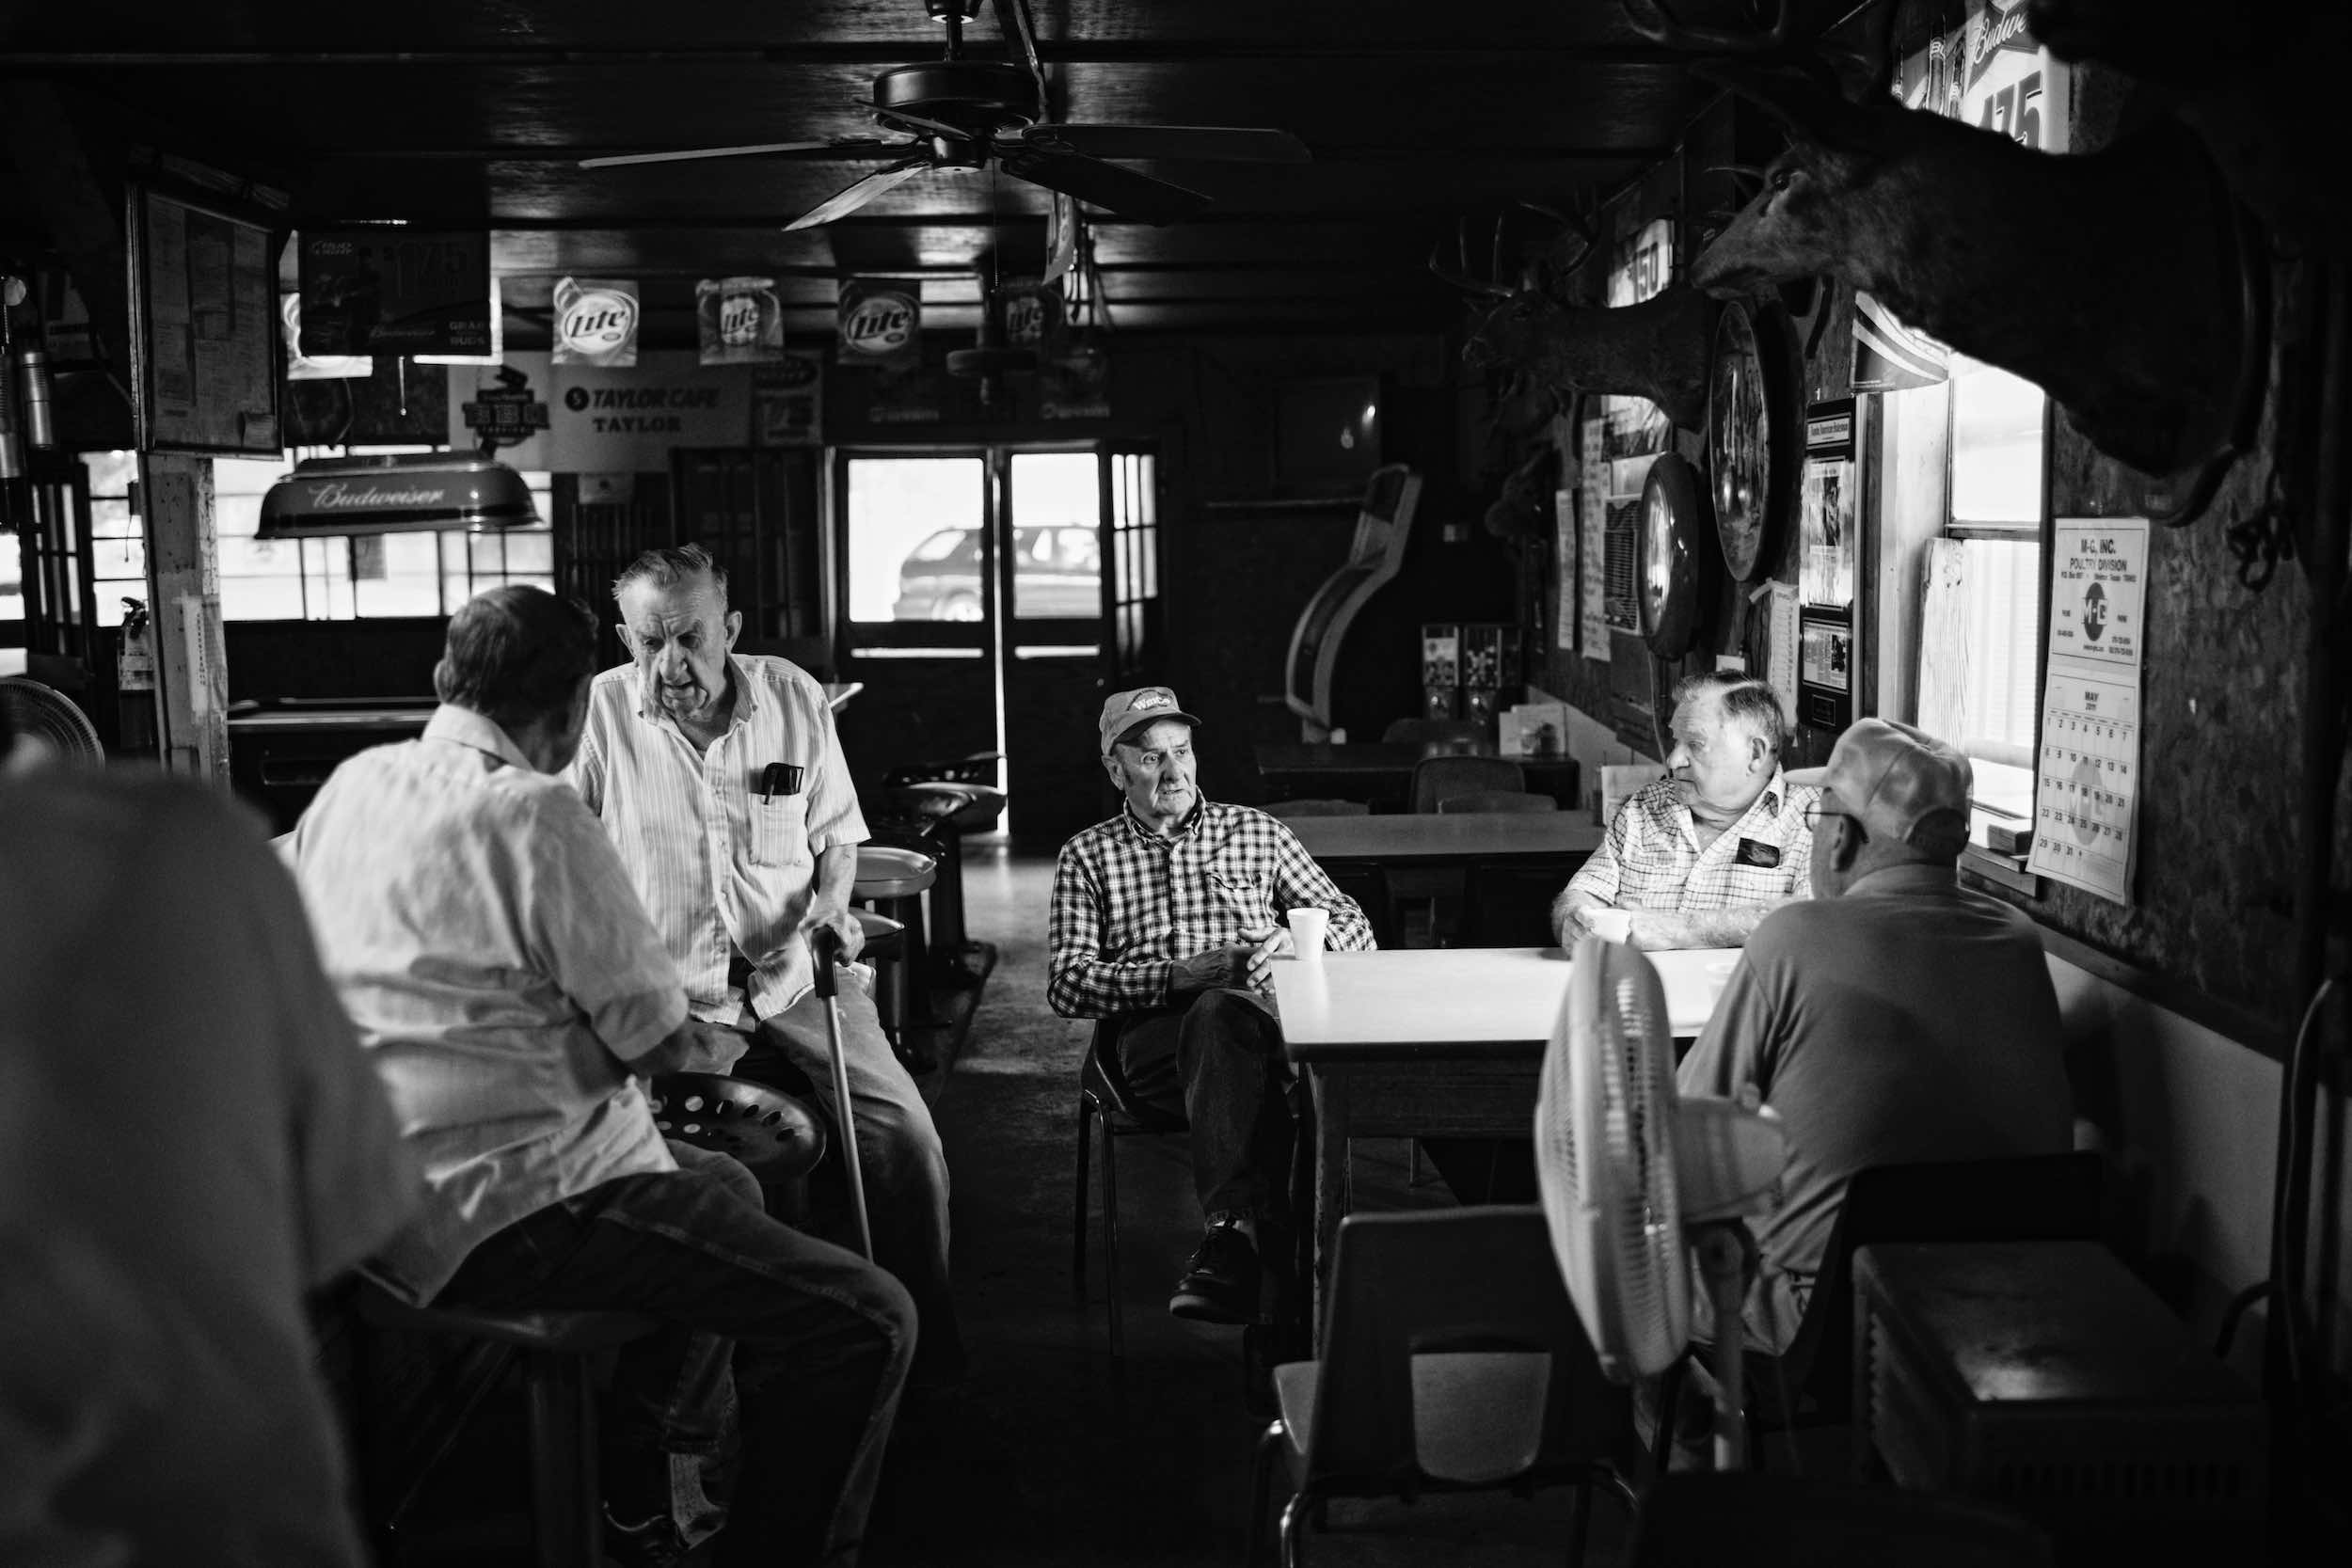 Jody Horton Photography - Elderly men chatting in restaurant dining room, shot in B&W.